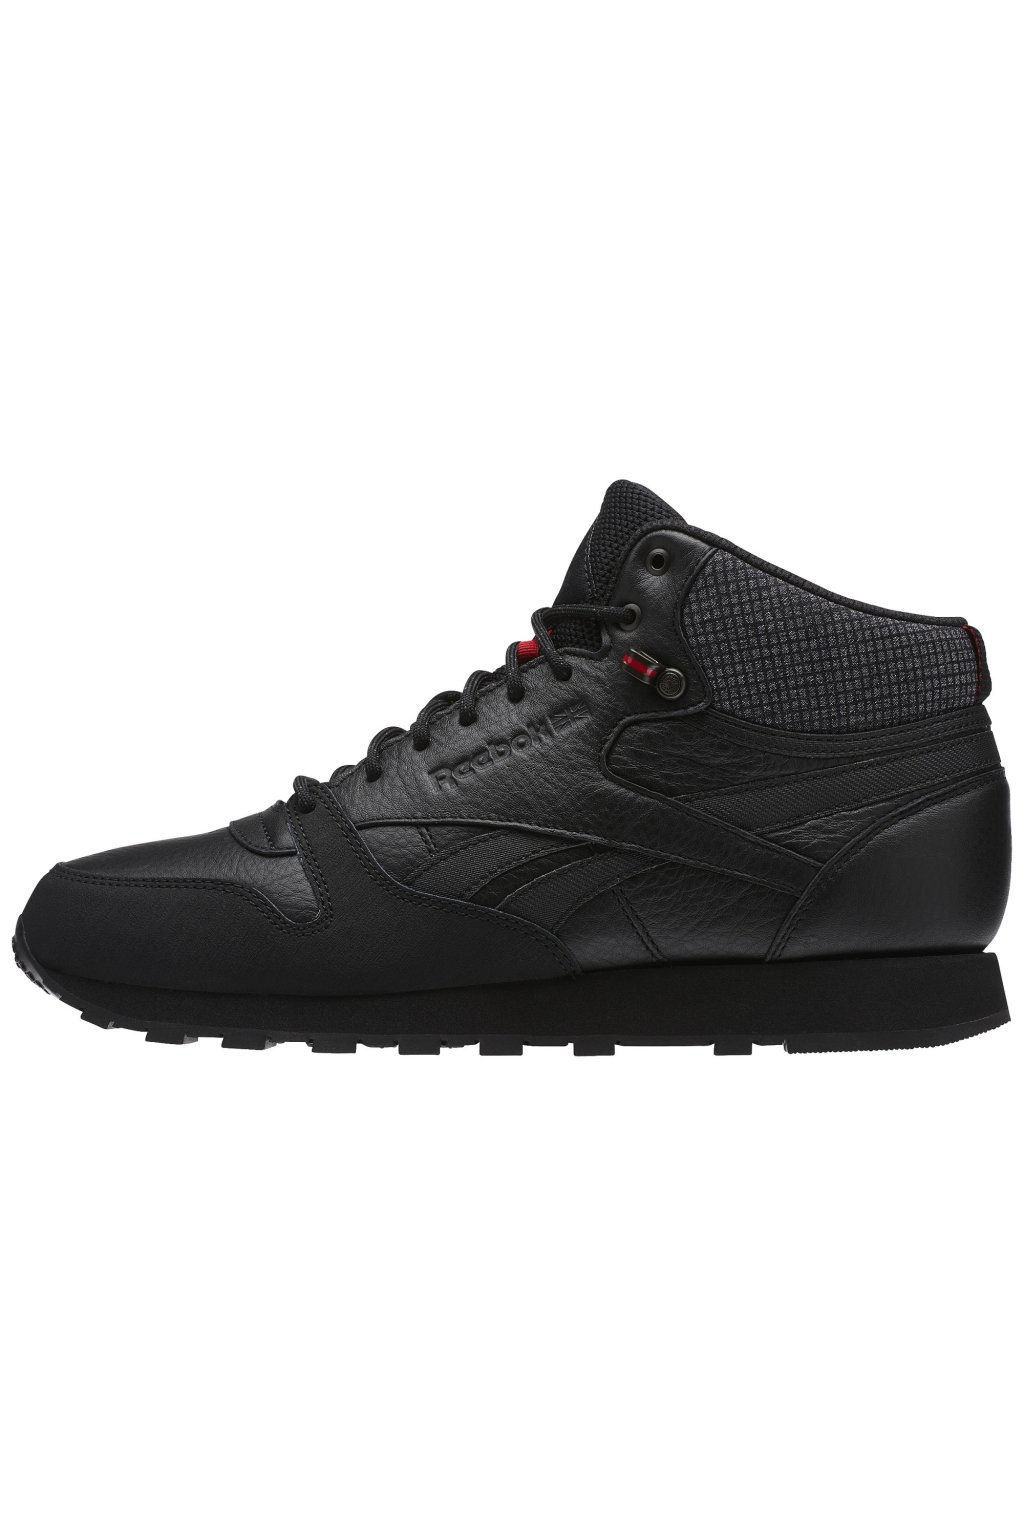 bs6363 topanky reebok classic leather mid (1)